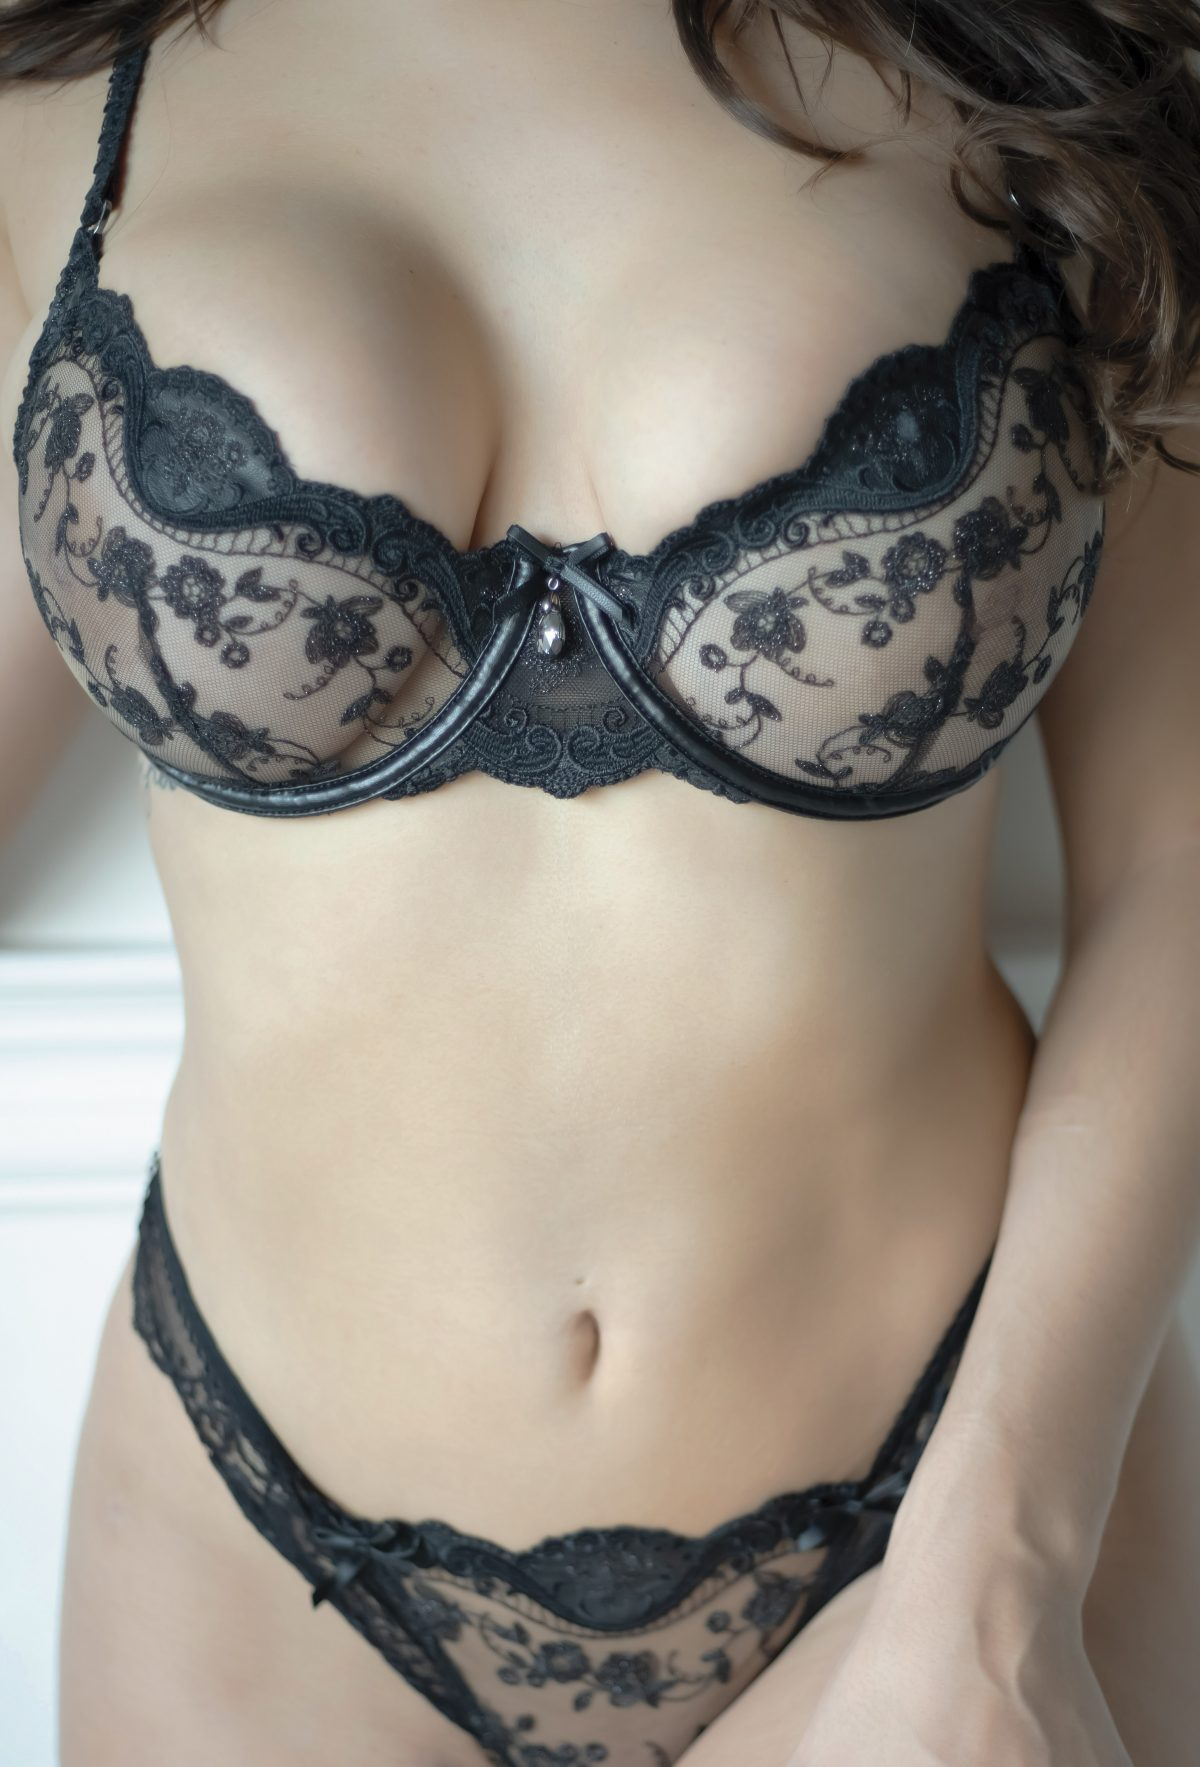 Toronto escorts companion upscale Serena Interests Duo Couple-friendly Non-smoking Age Young Slender Curvy Tall Breasts Natural Hair Brunette Ethnicity European Tattoos Small